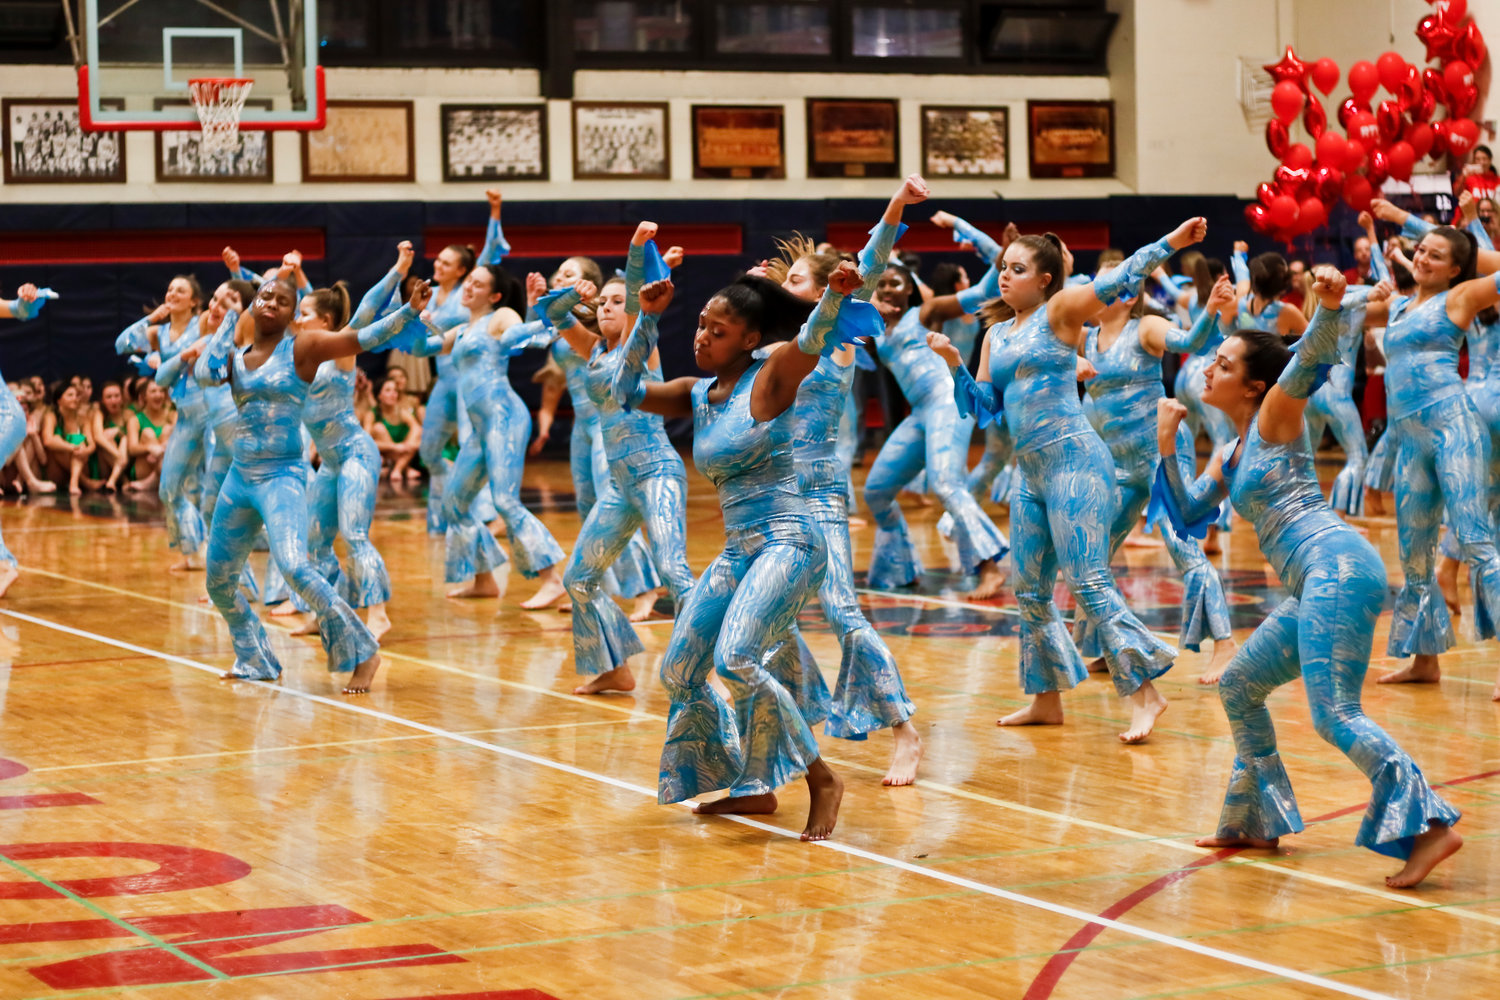 Dressed as water, dancers on Red showed off their moves.